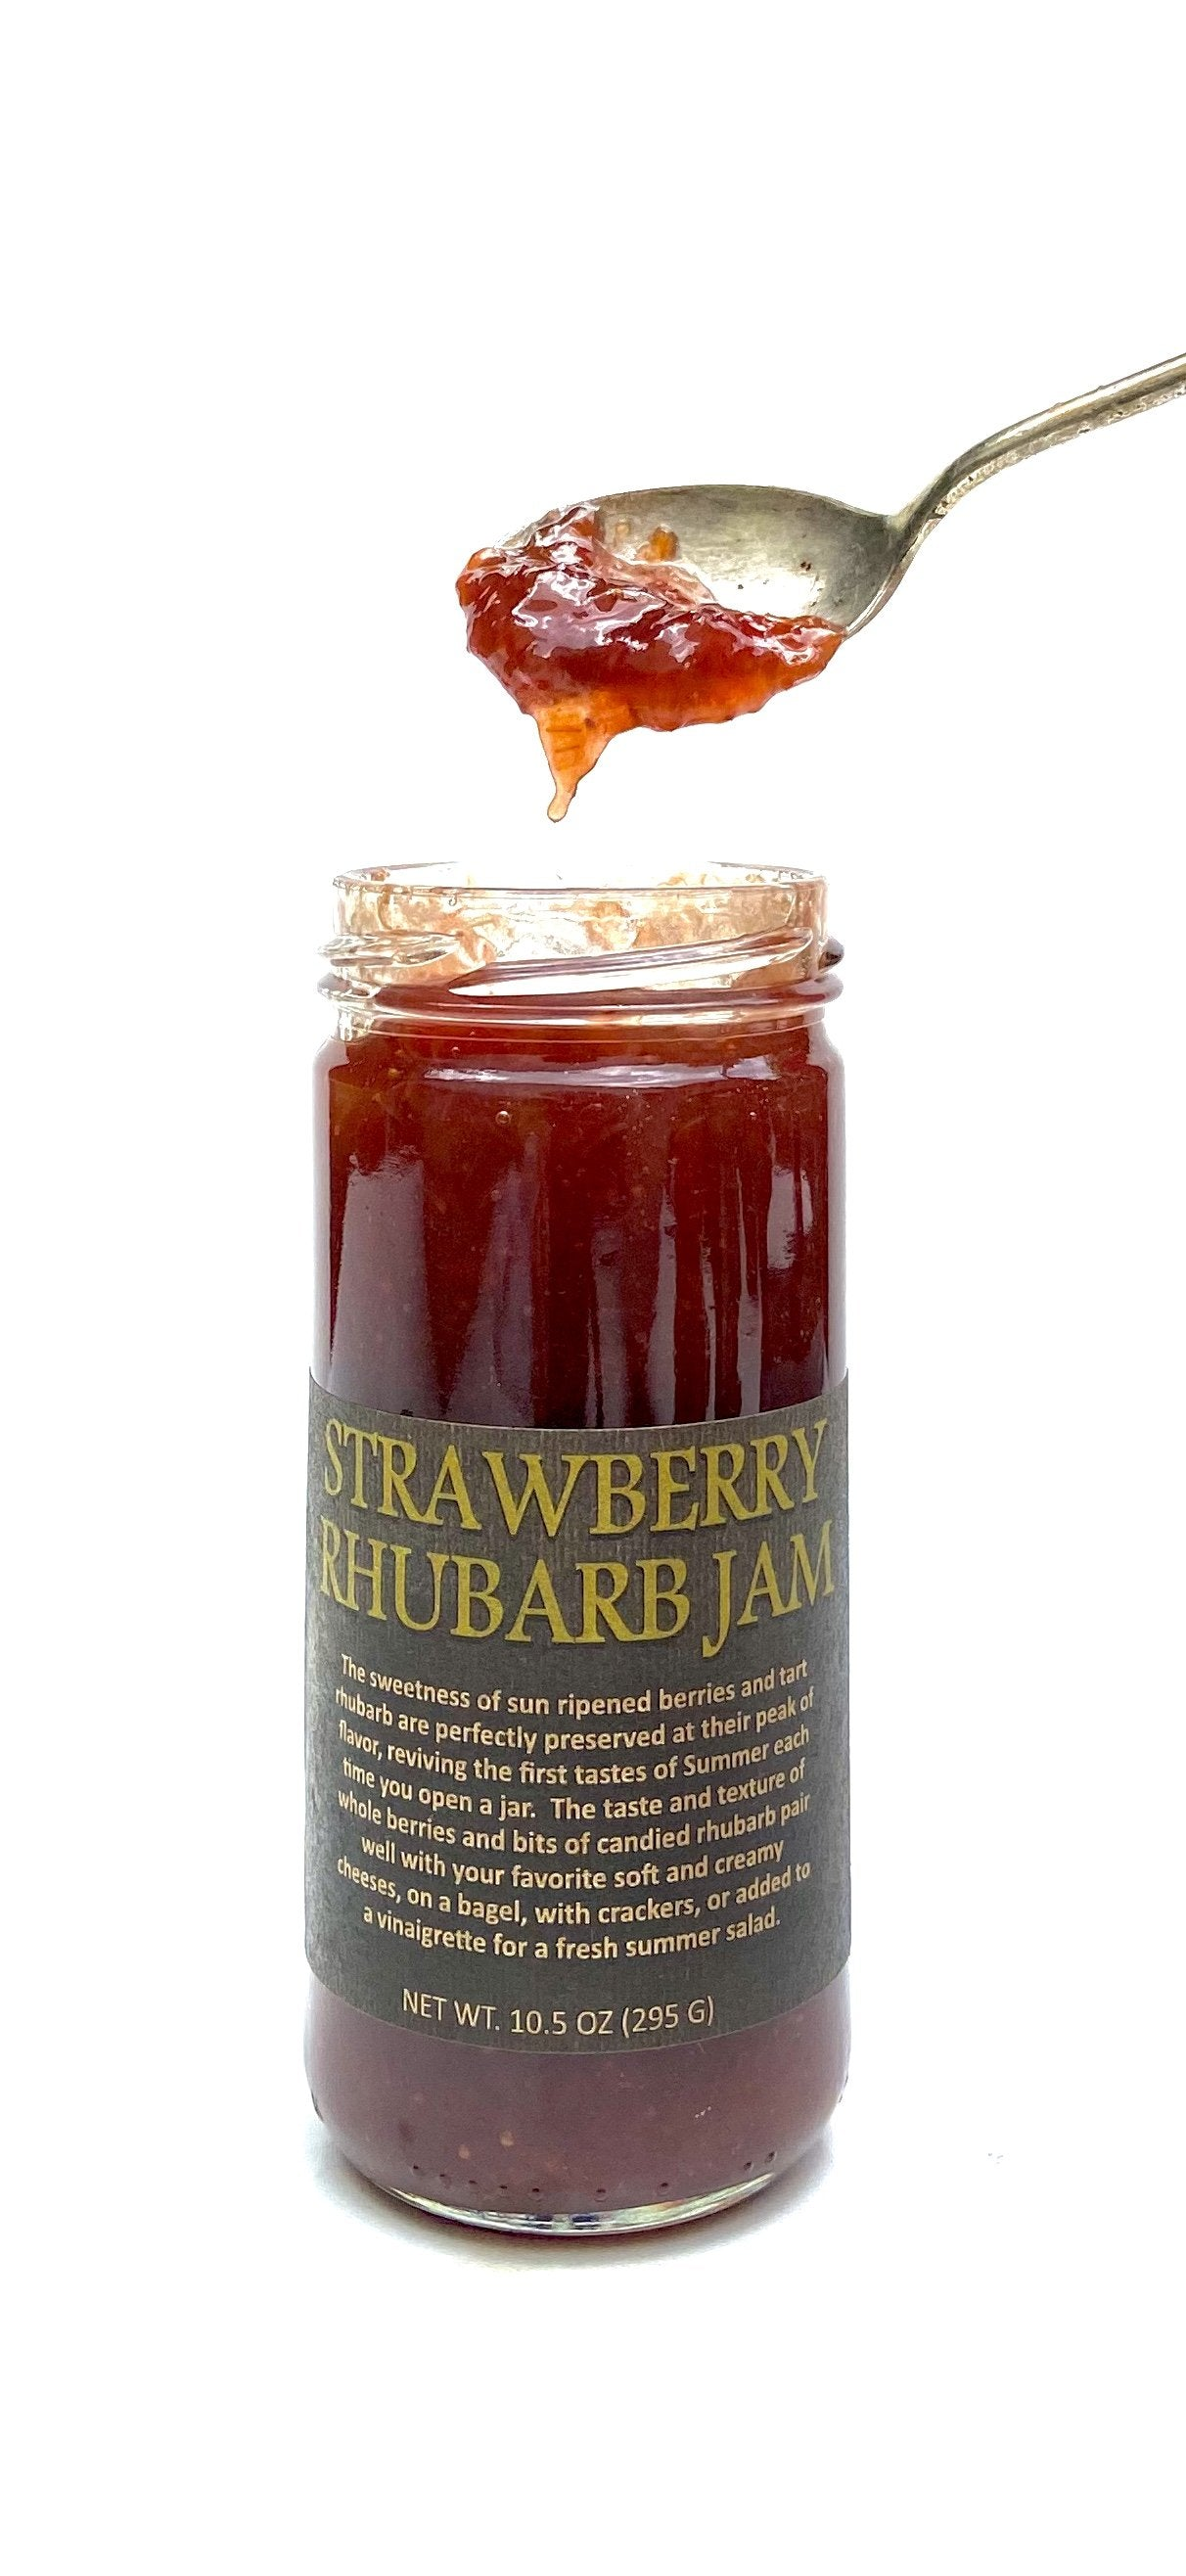 Strawberry Rhubarb Jam - Copper Pot & Wooden Spoon - Provisions, LLC